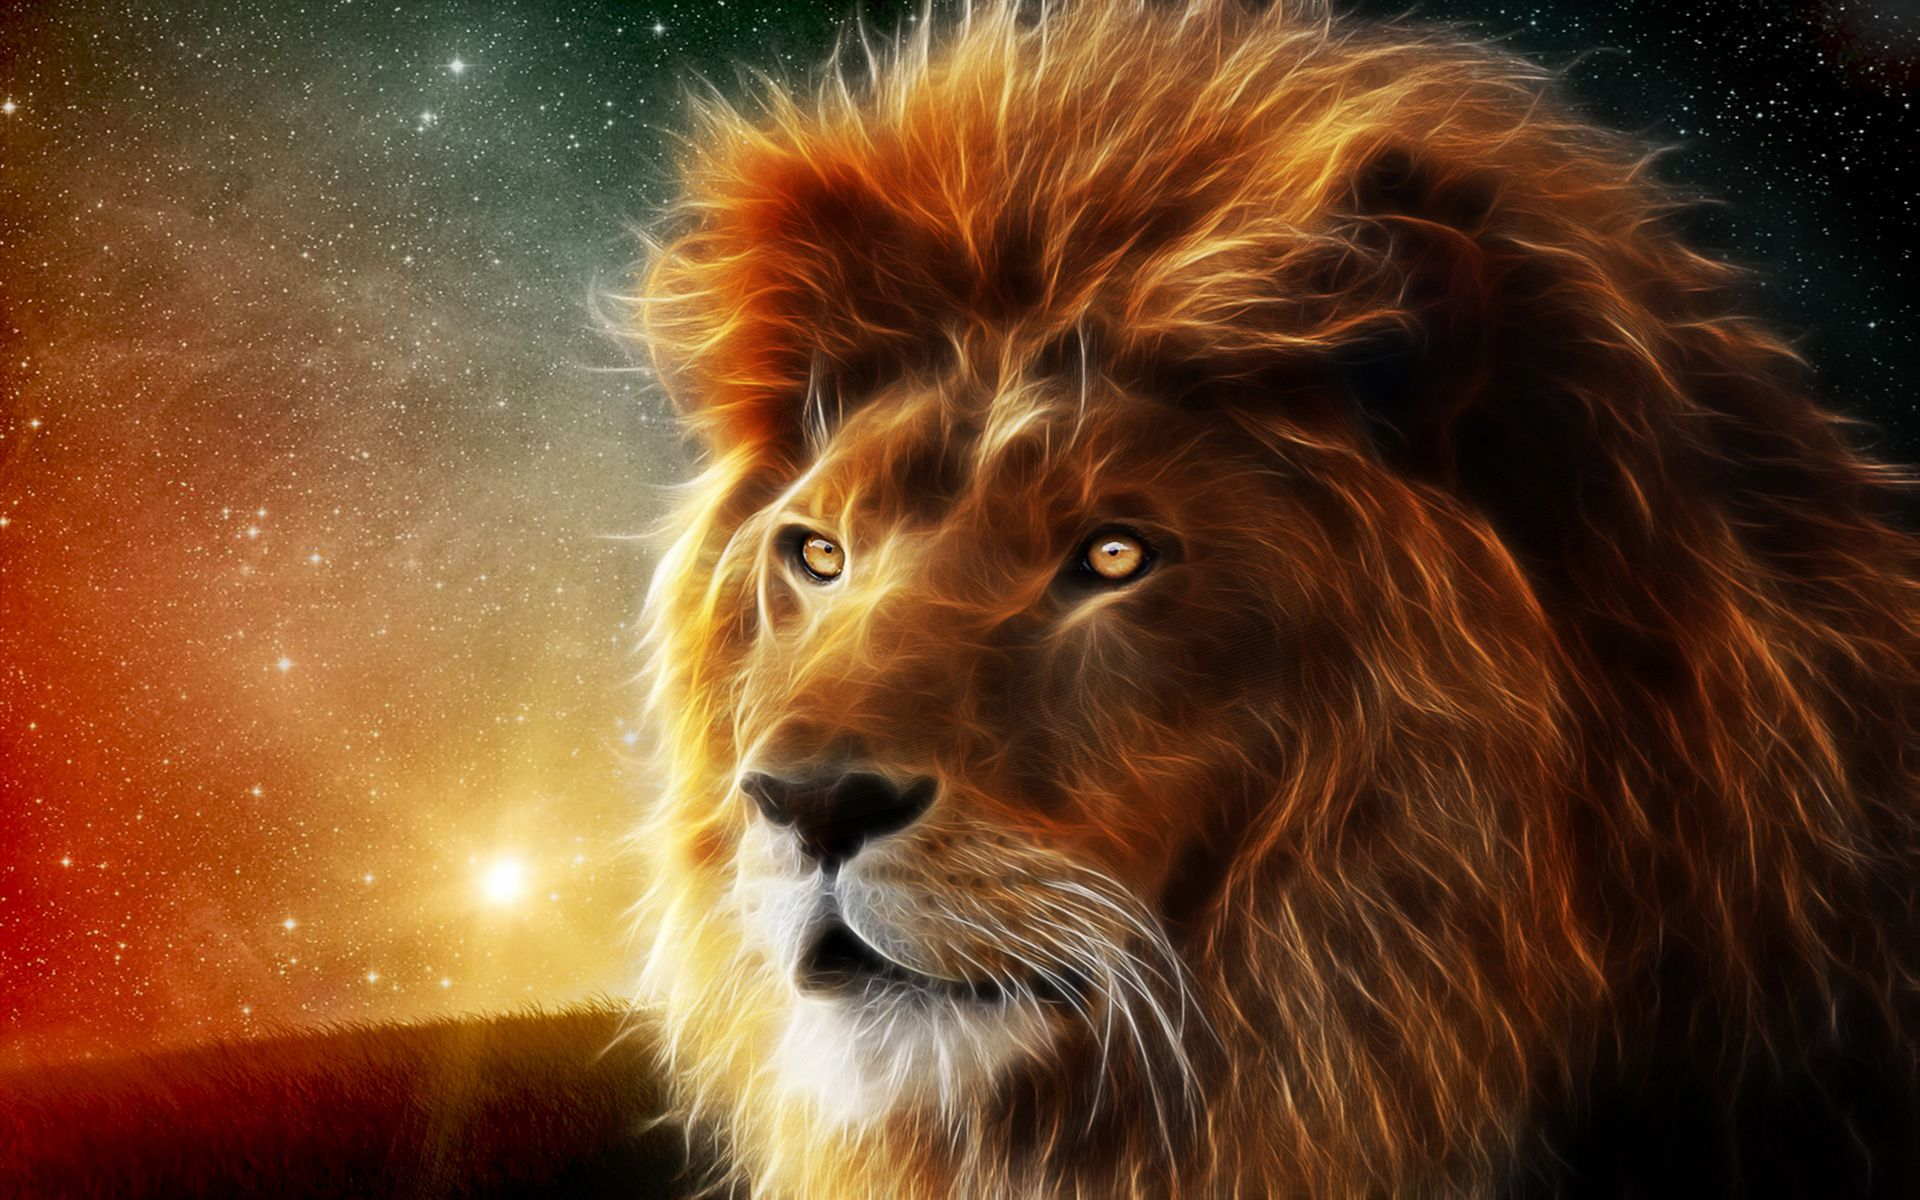 Lions High Definition Wallpapers For Free Download Page 1 Lion Pictures Lion Wallpaper Lion Art